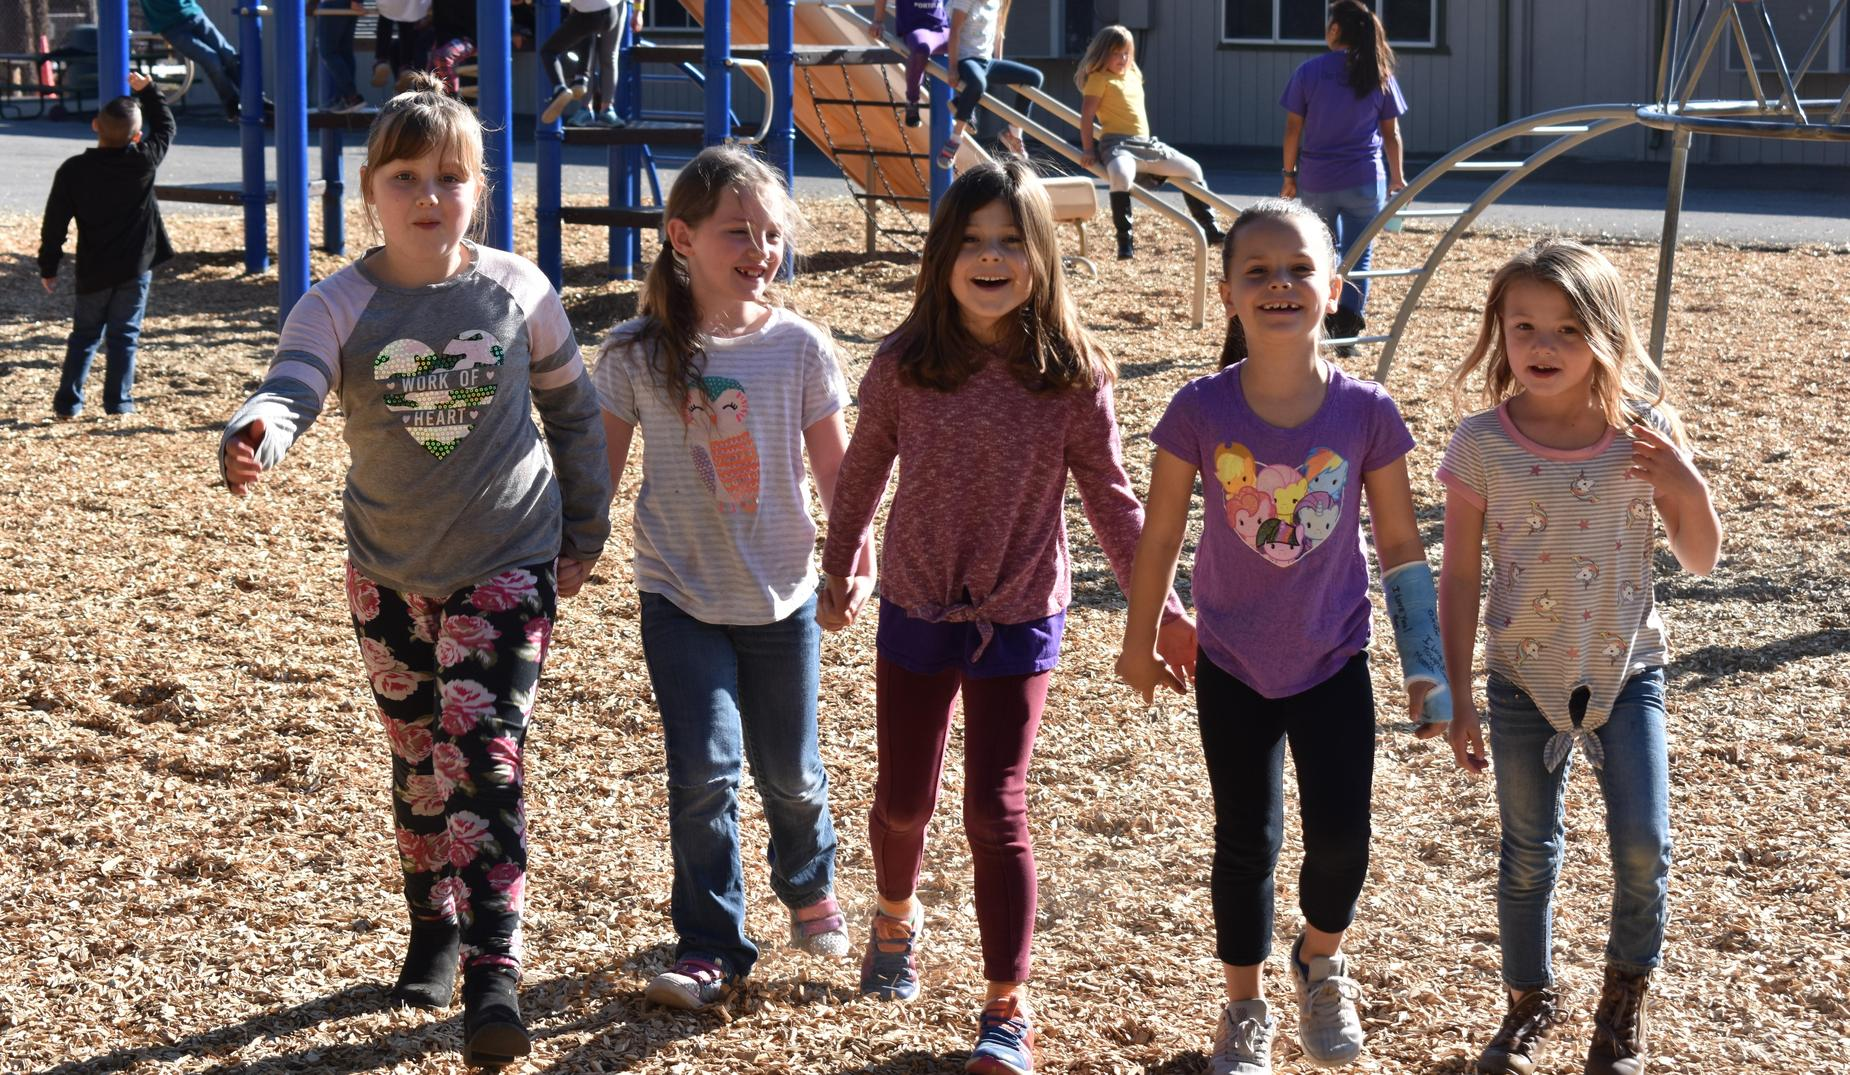 2nd grade friends on the playground